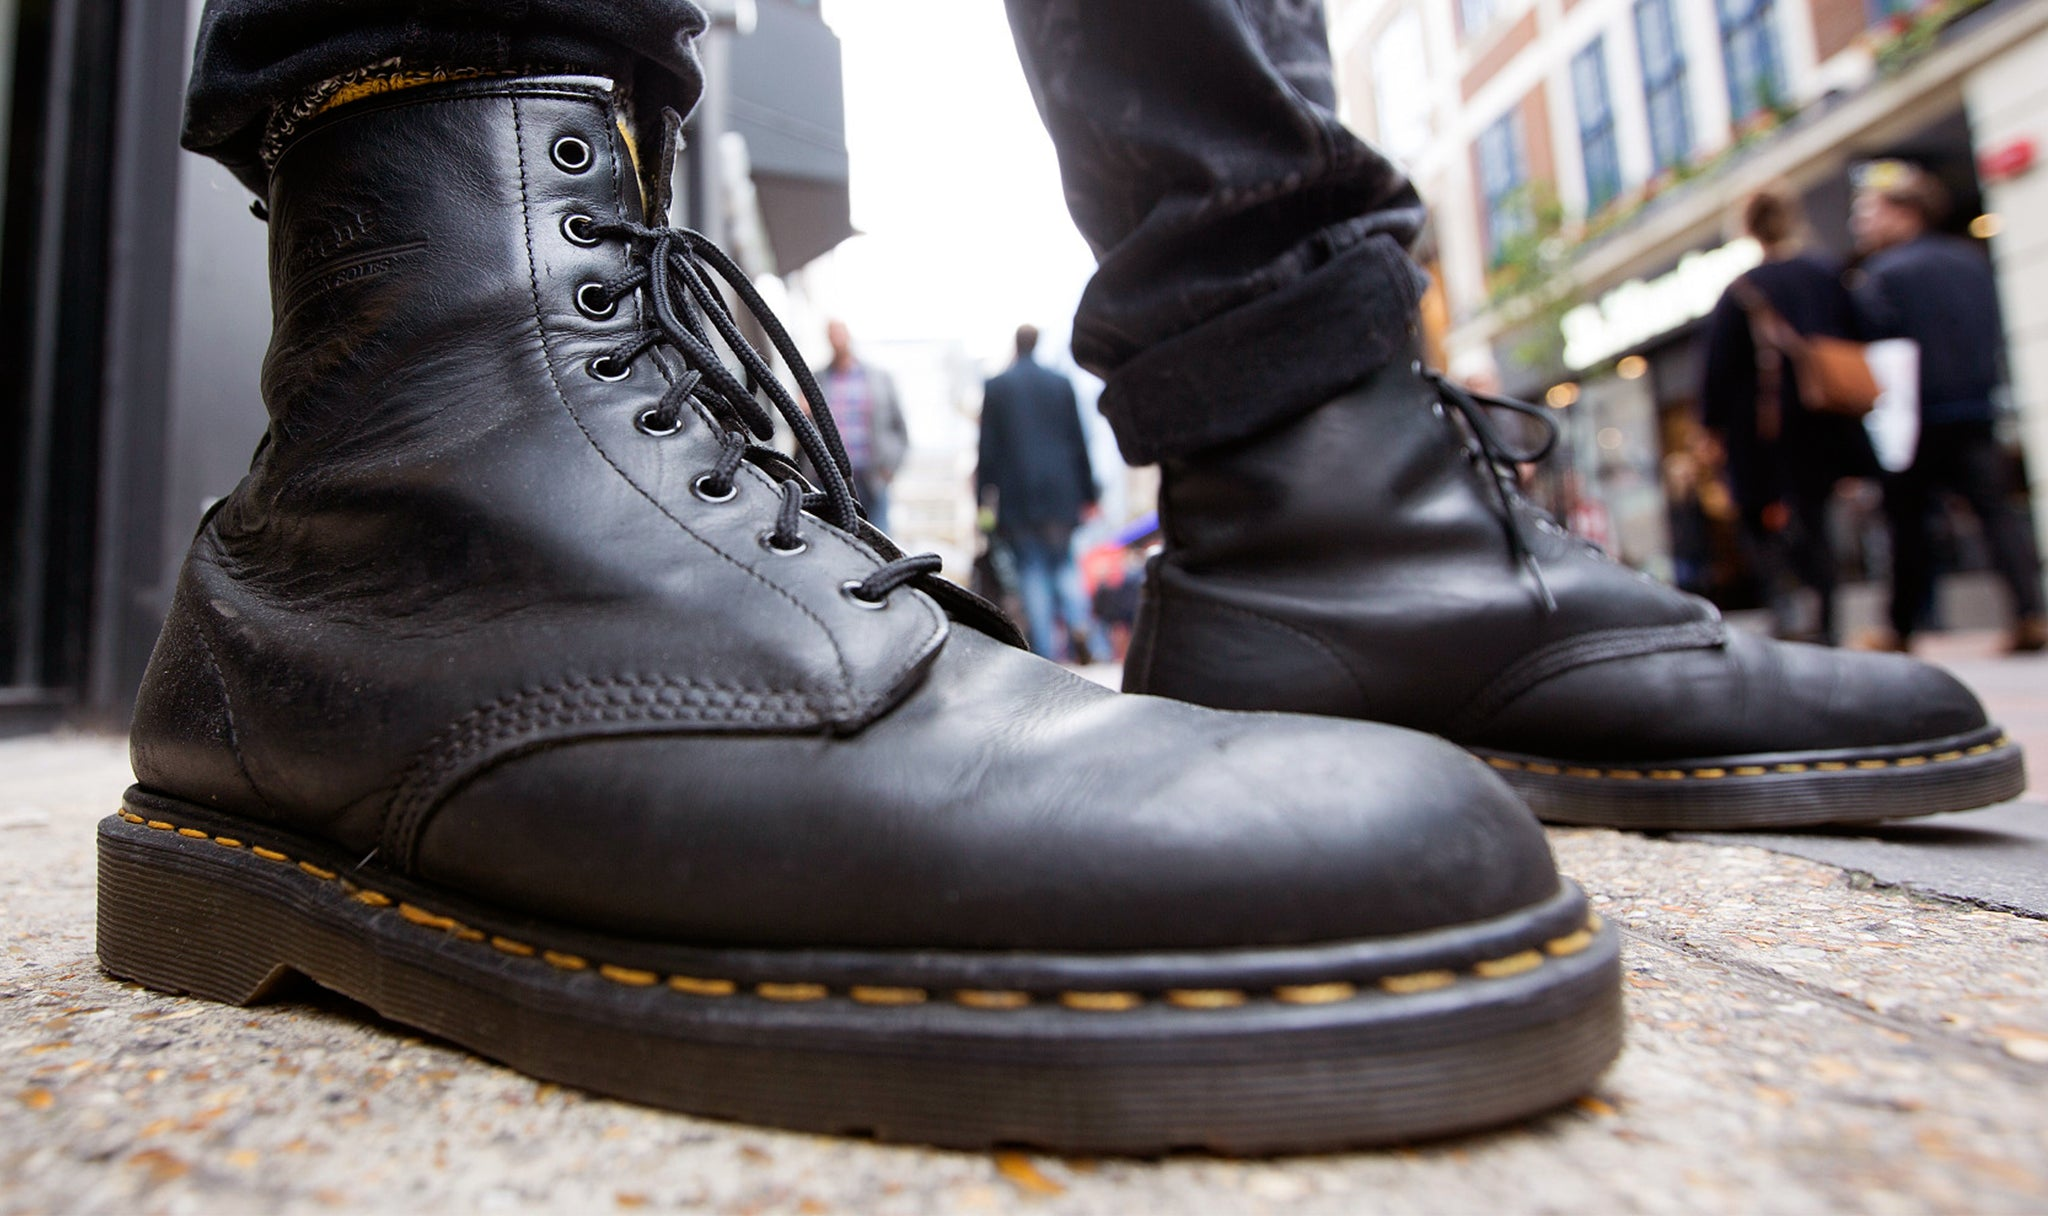 Dr. Martens Boots Available in Santa Ana